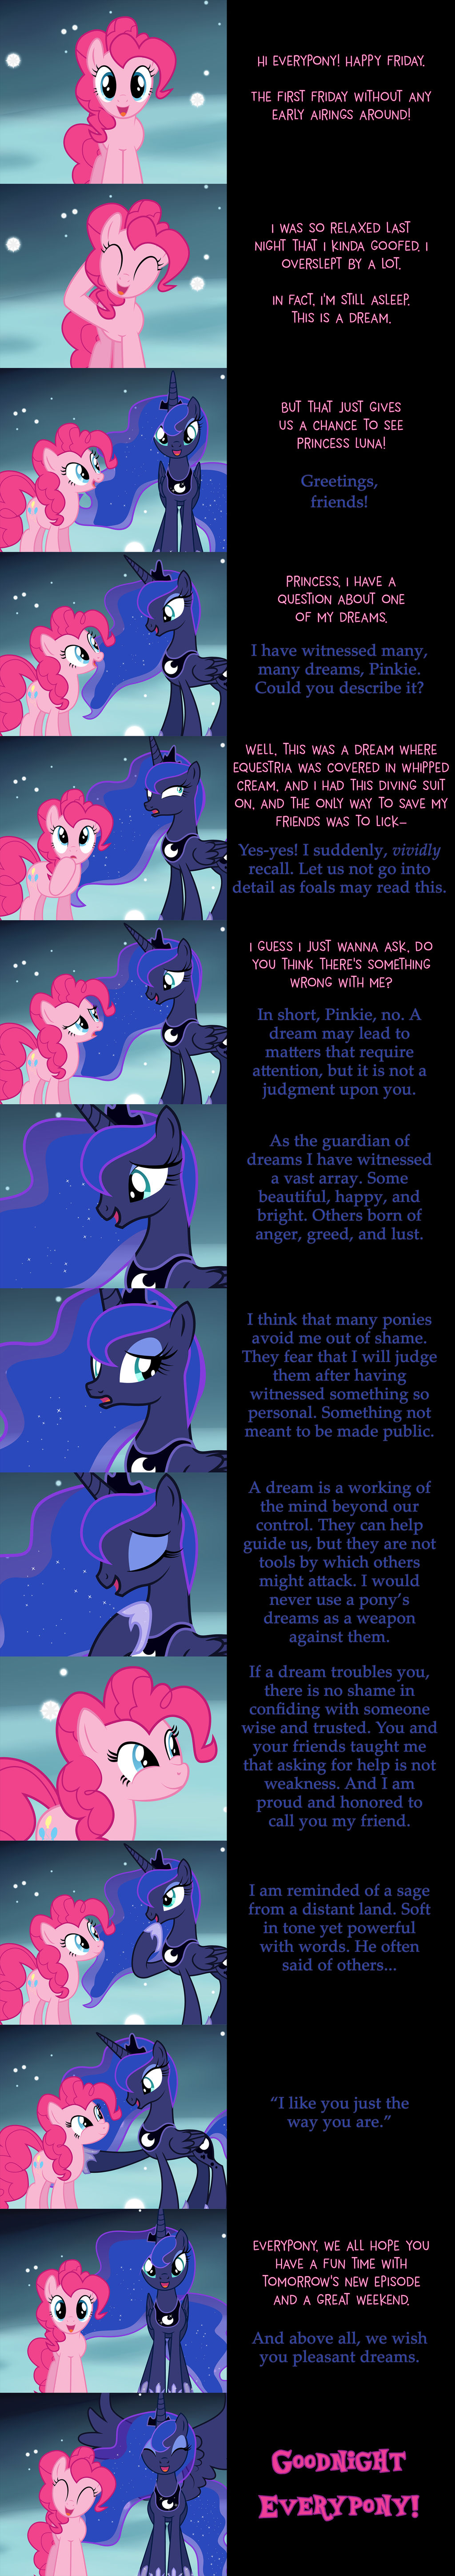 Pinkie Pie Says Goodnight: These Dreams